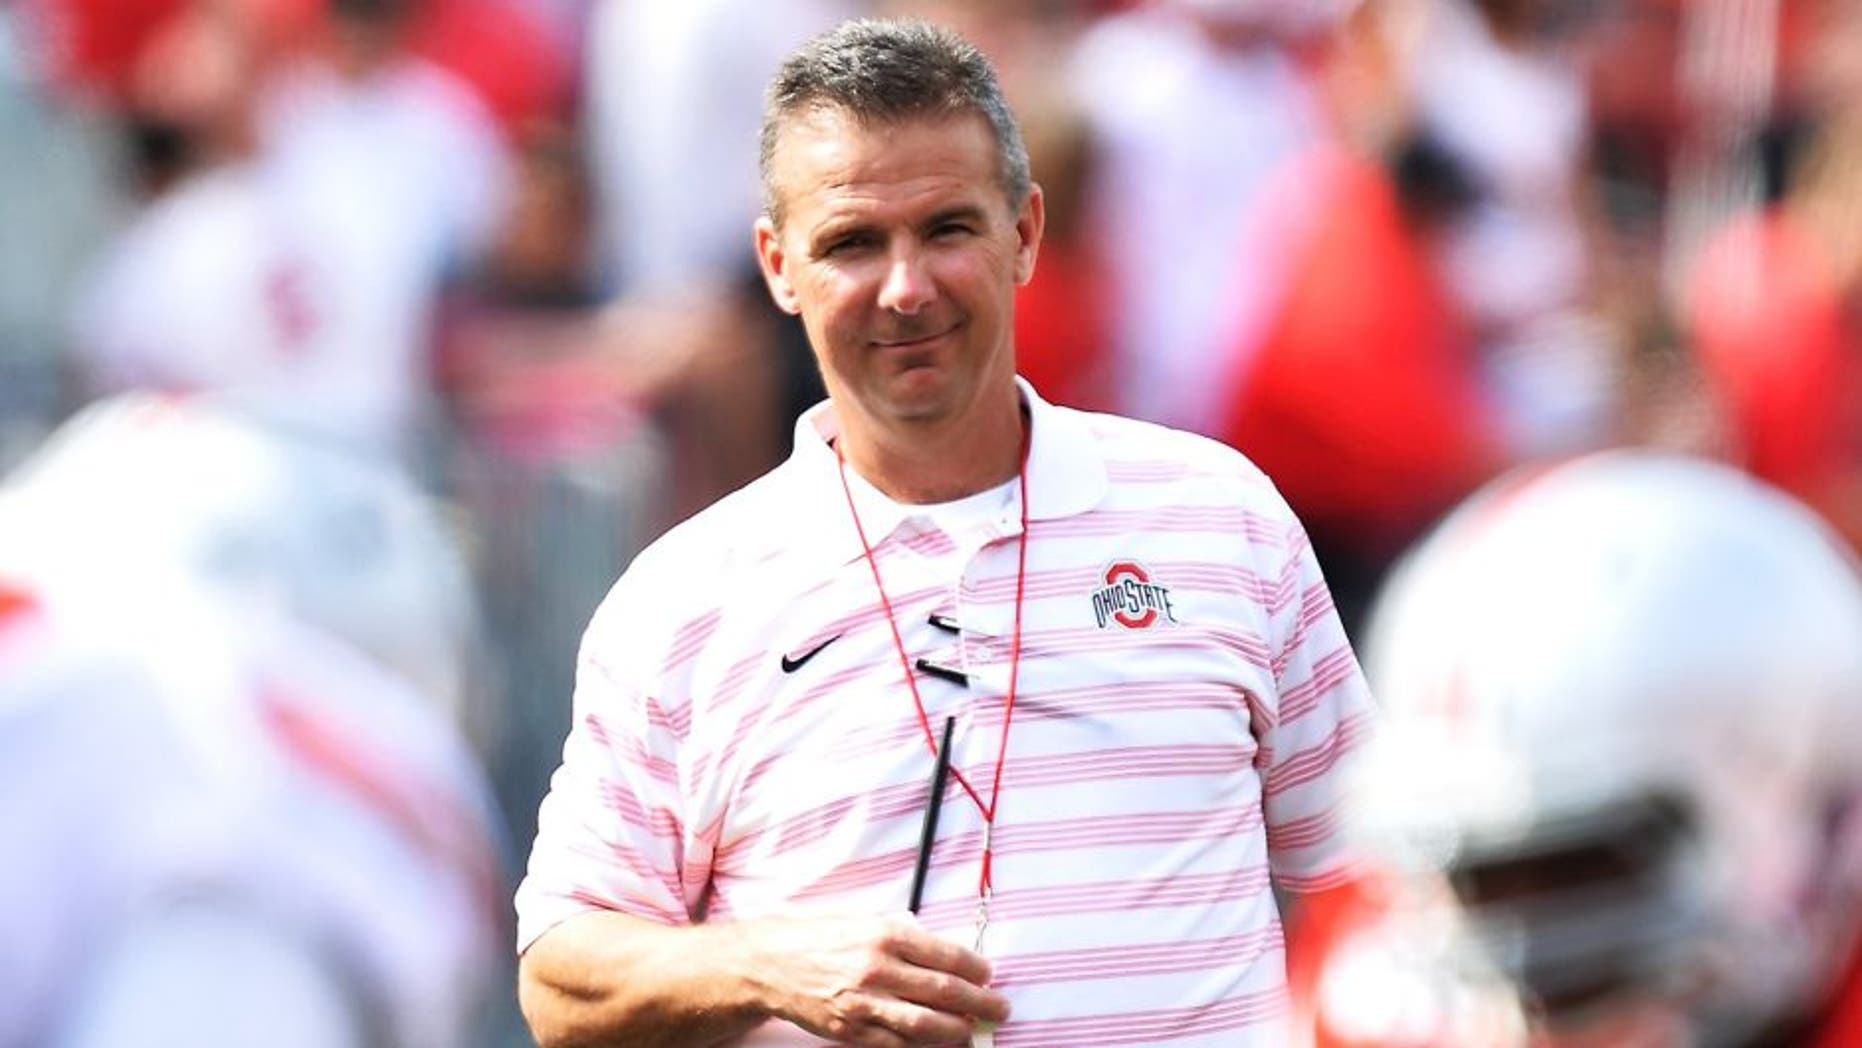 COLUMBUS, OH - APRIL 18: Head Coach Urban Meyer of the Ohio State Buckeyes watches his team scrimmage against each other during the annual Ohio State Spring Game at Ohio Stadium on April 18, 2015 in Columbus, Ohio. (Photo by Jamie Sabau/Getty Images)